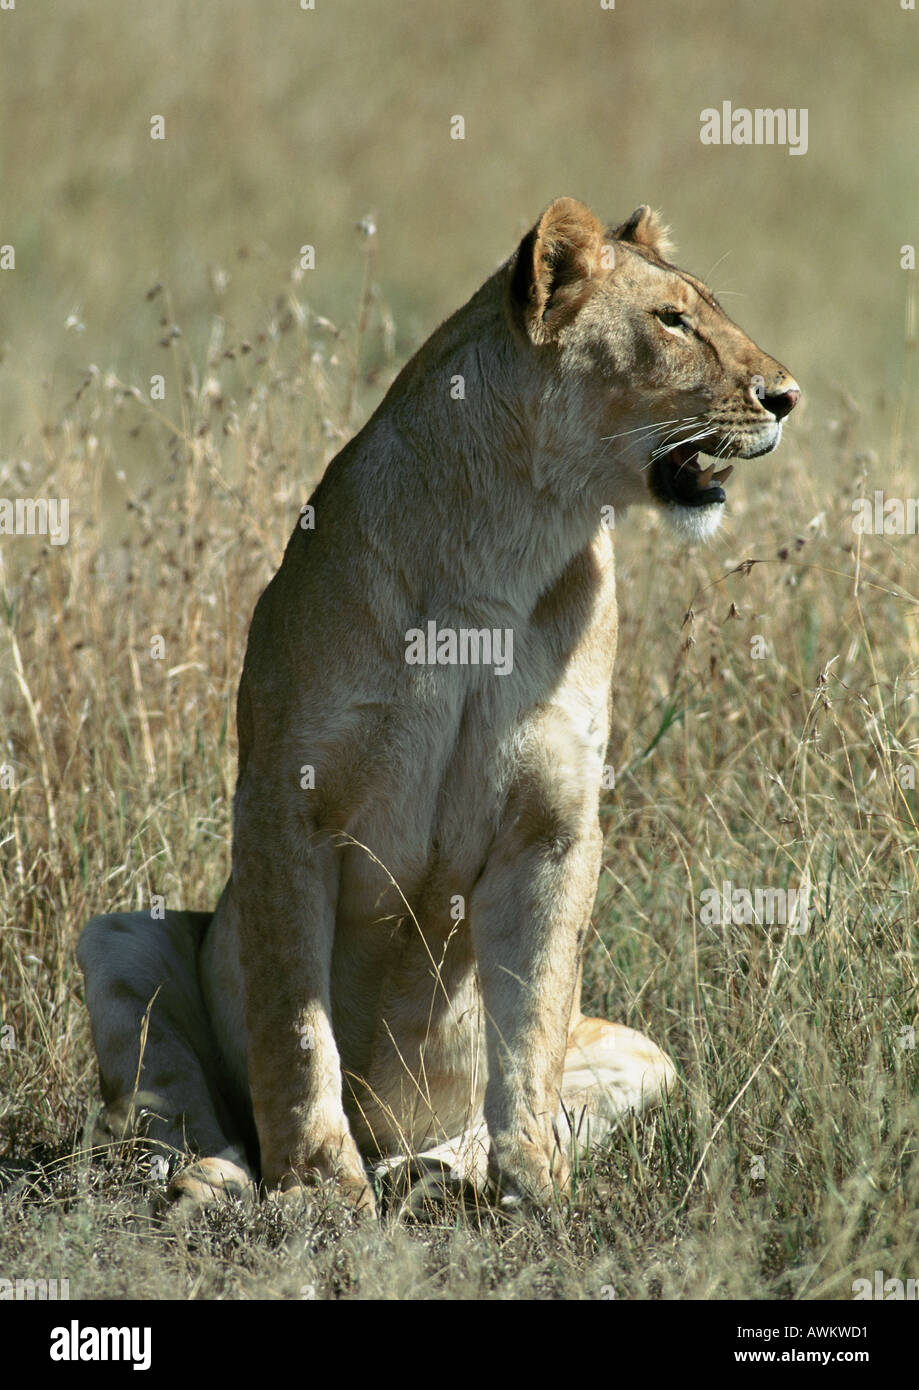 Lioness (Panthera leo) sitting in grass, full length - Stock Image